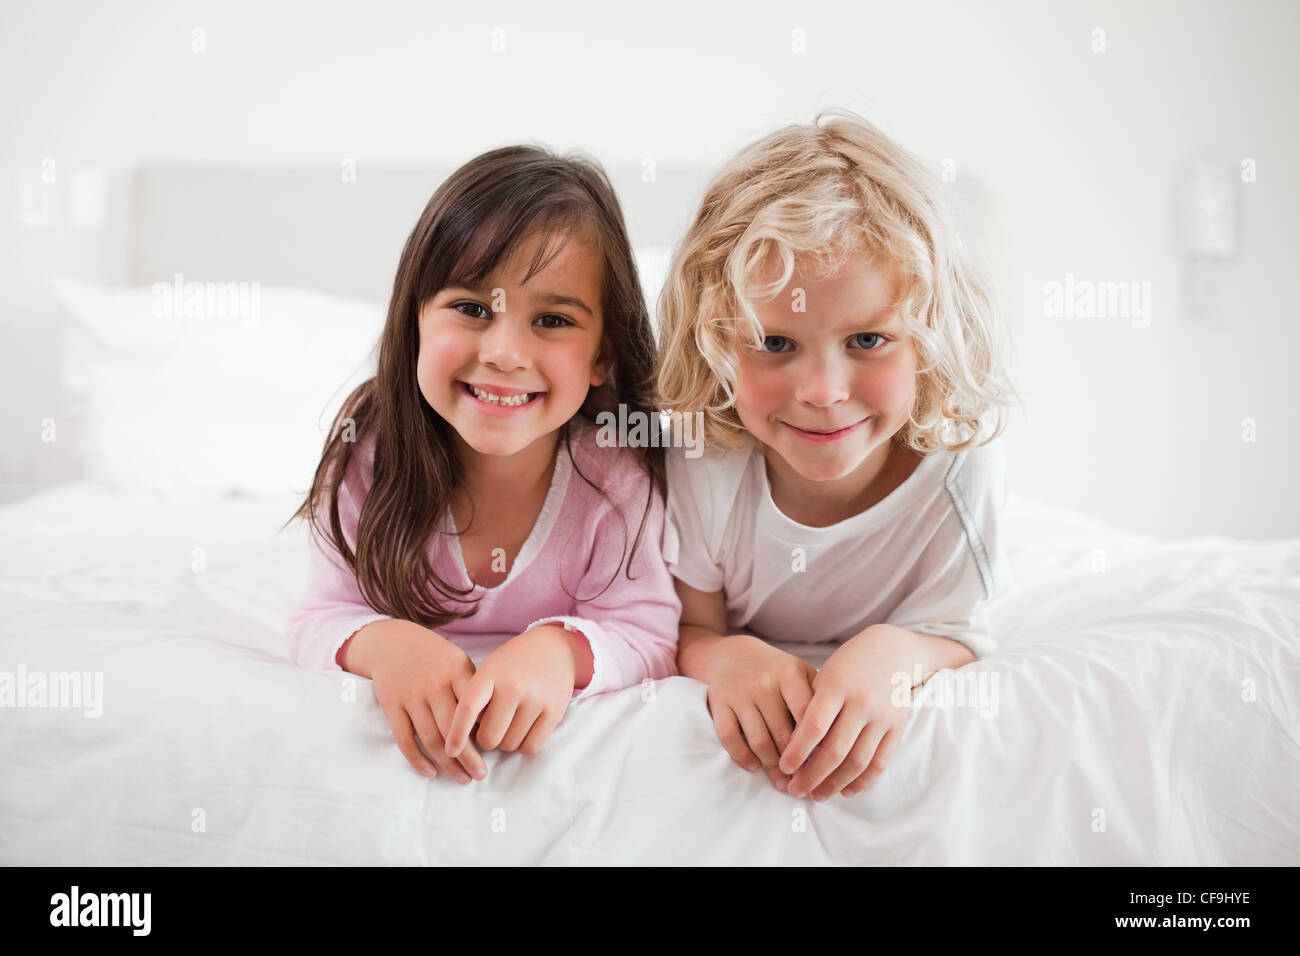 Children lying on their bellies - Stock Image